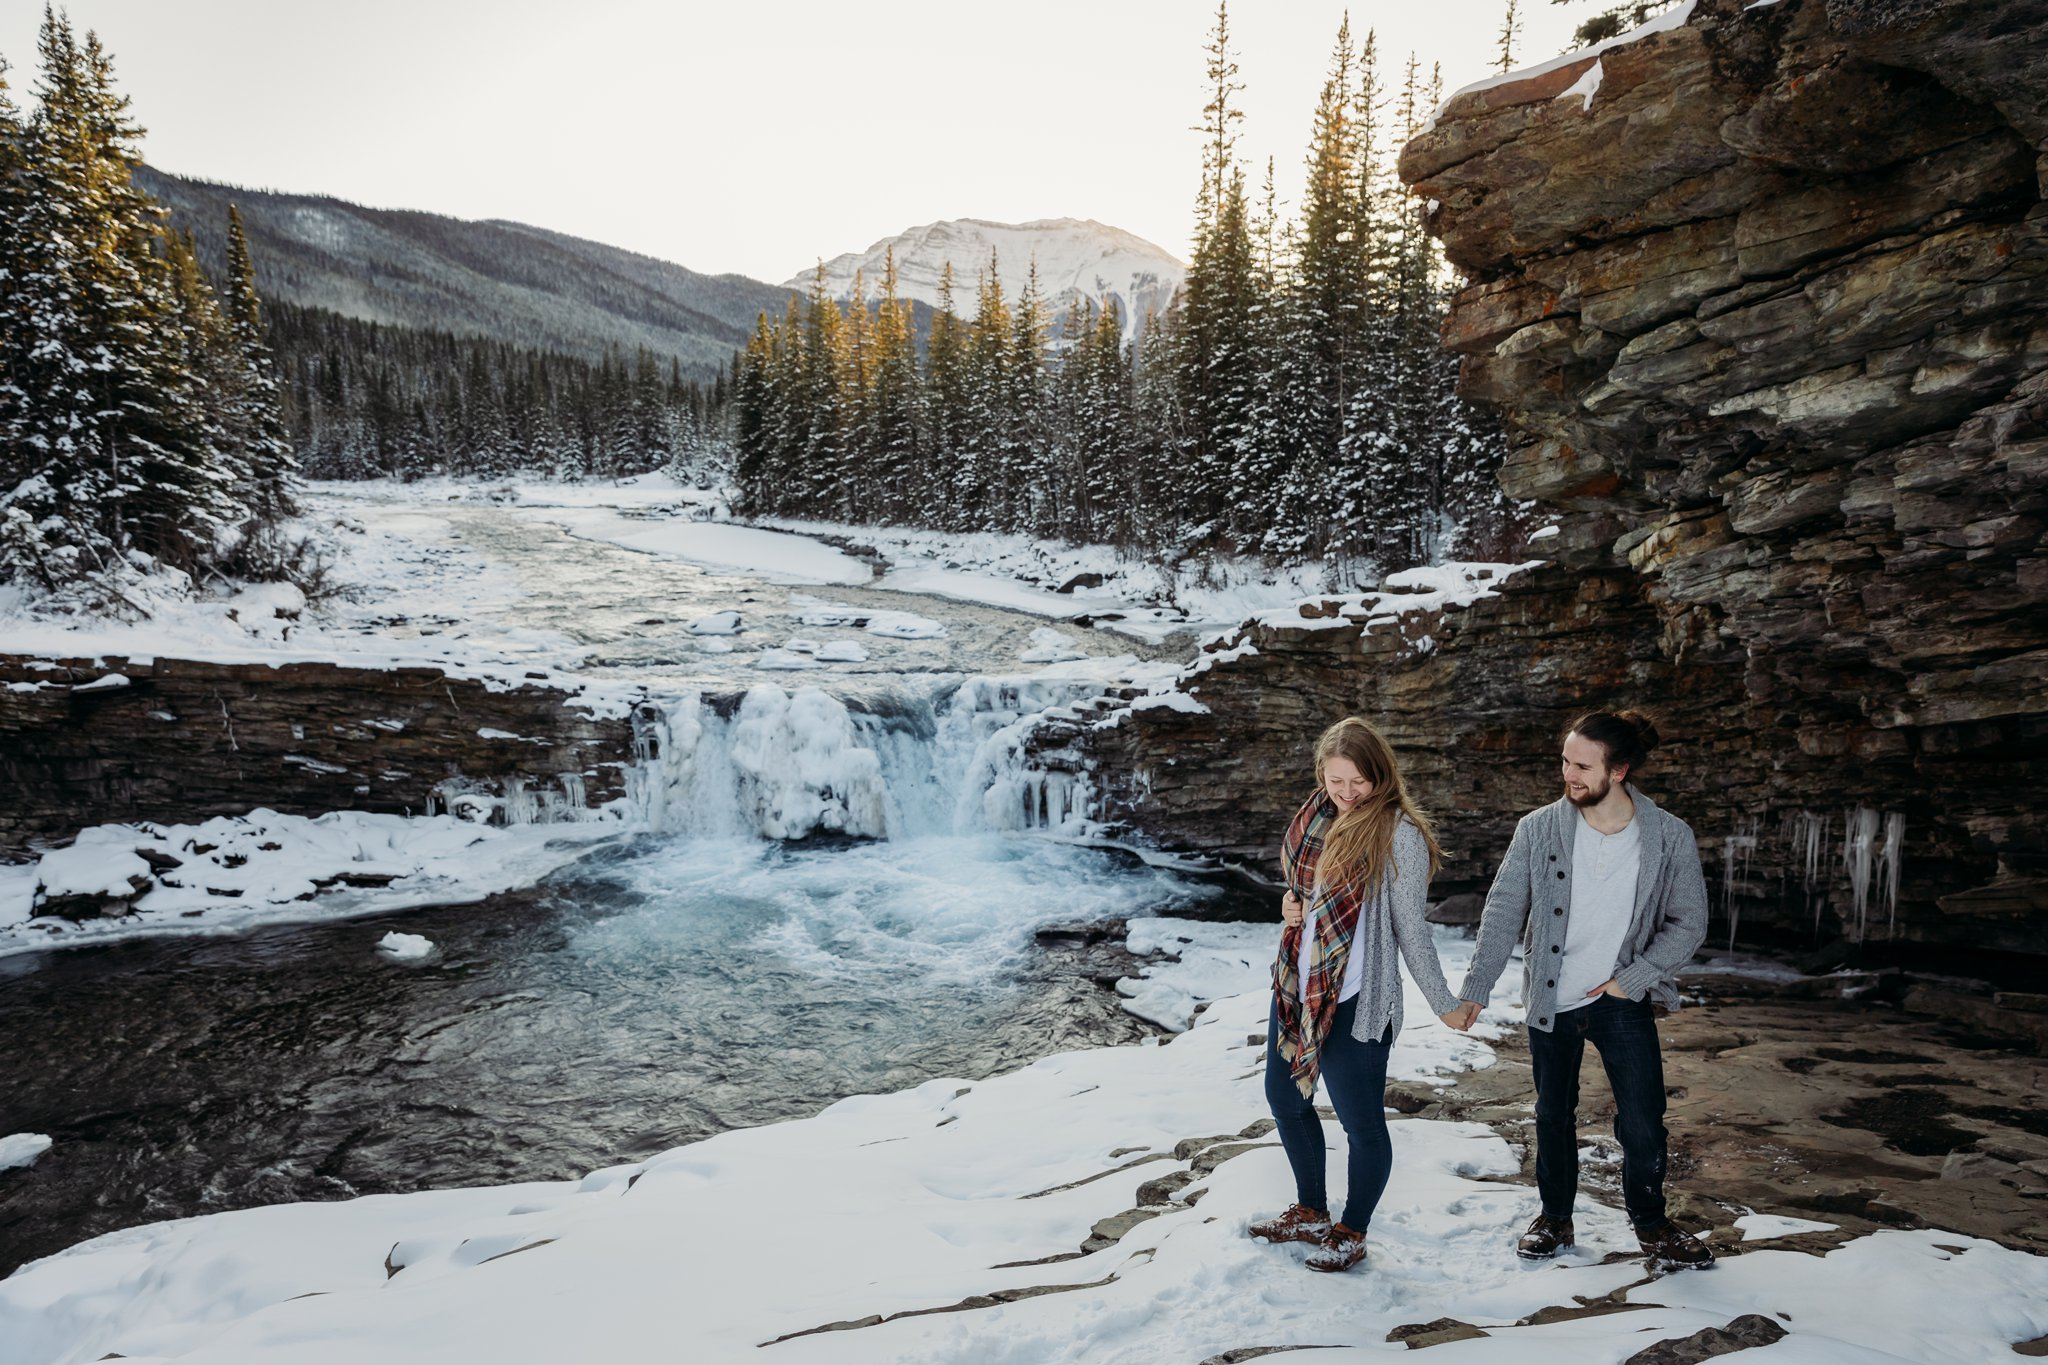 AshleyDaphnePhotography Calgary Photographer Wedding Engagement Sheep River Provincial Park Photos Kananskis Rocky Mountain Canmore Photographer_0055.jpg